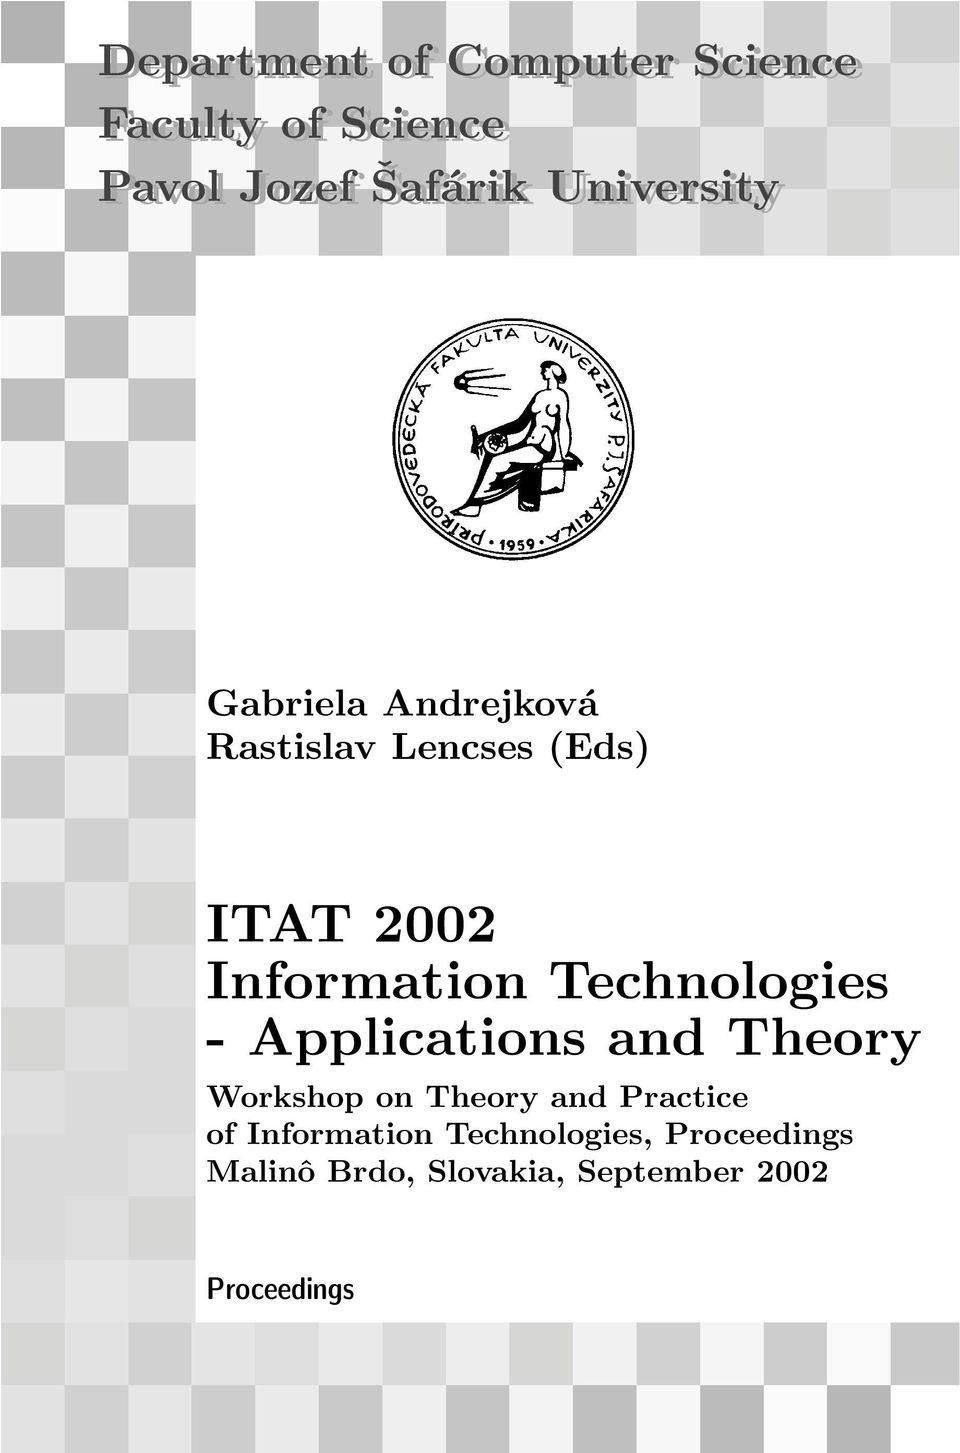 Technologies - Applications and Theory Workshop on Theory and Practice of